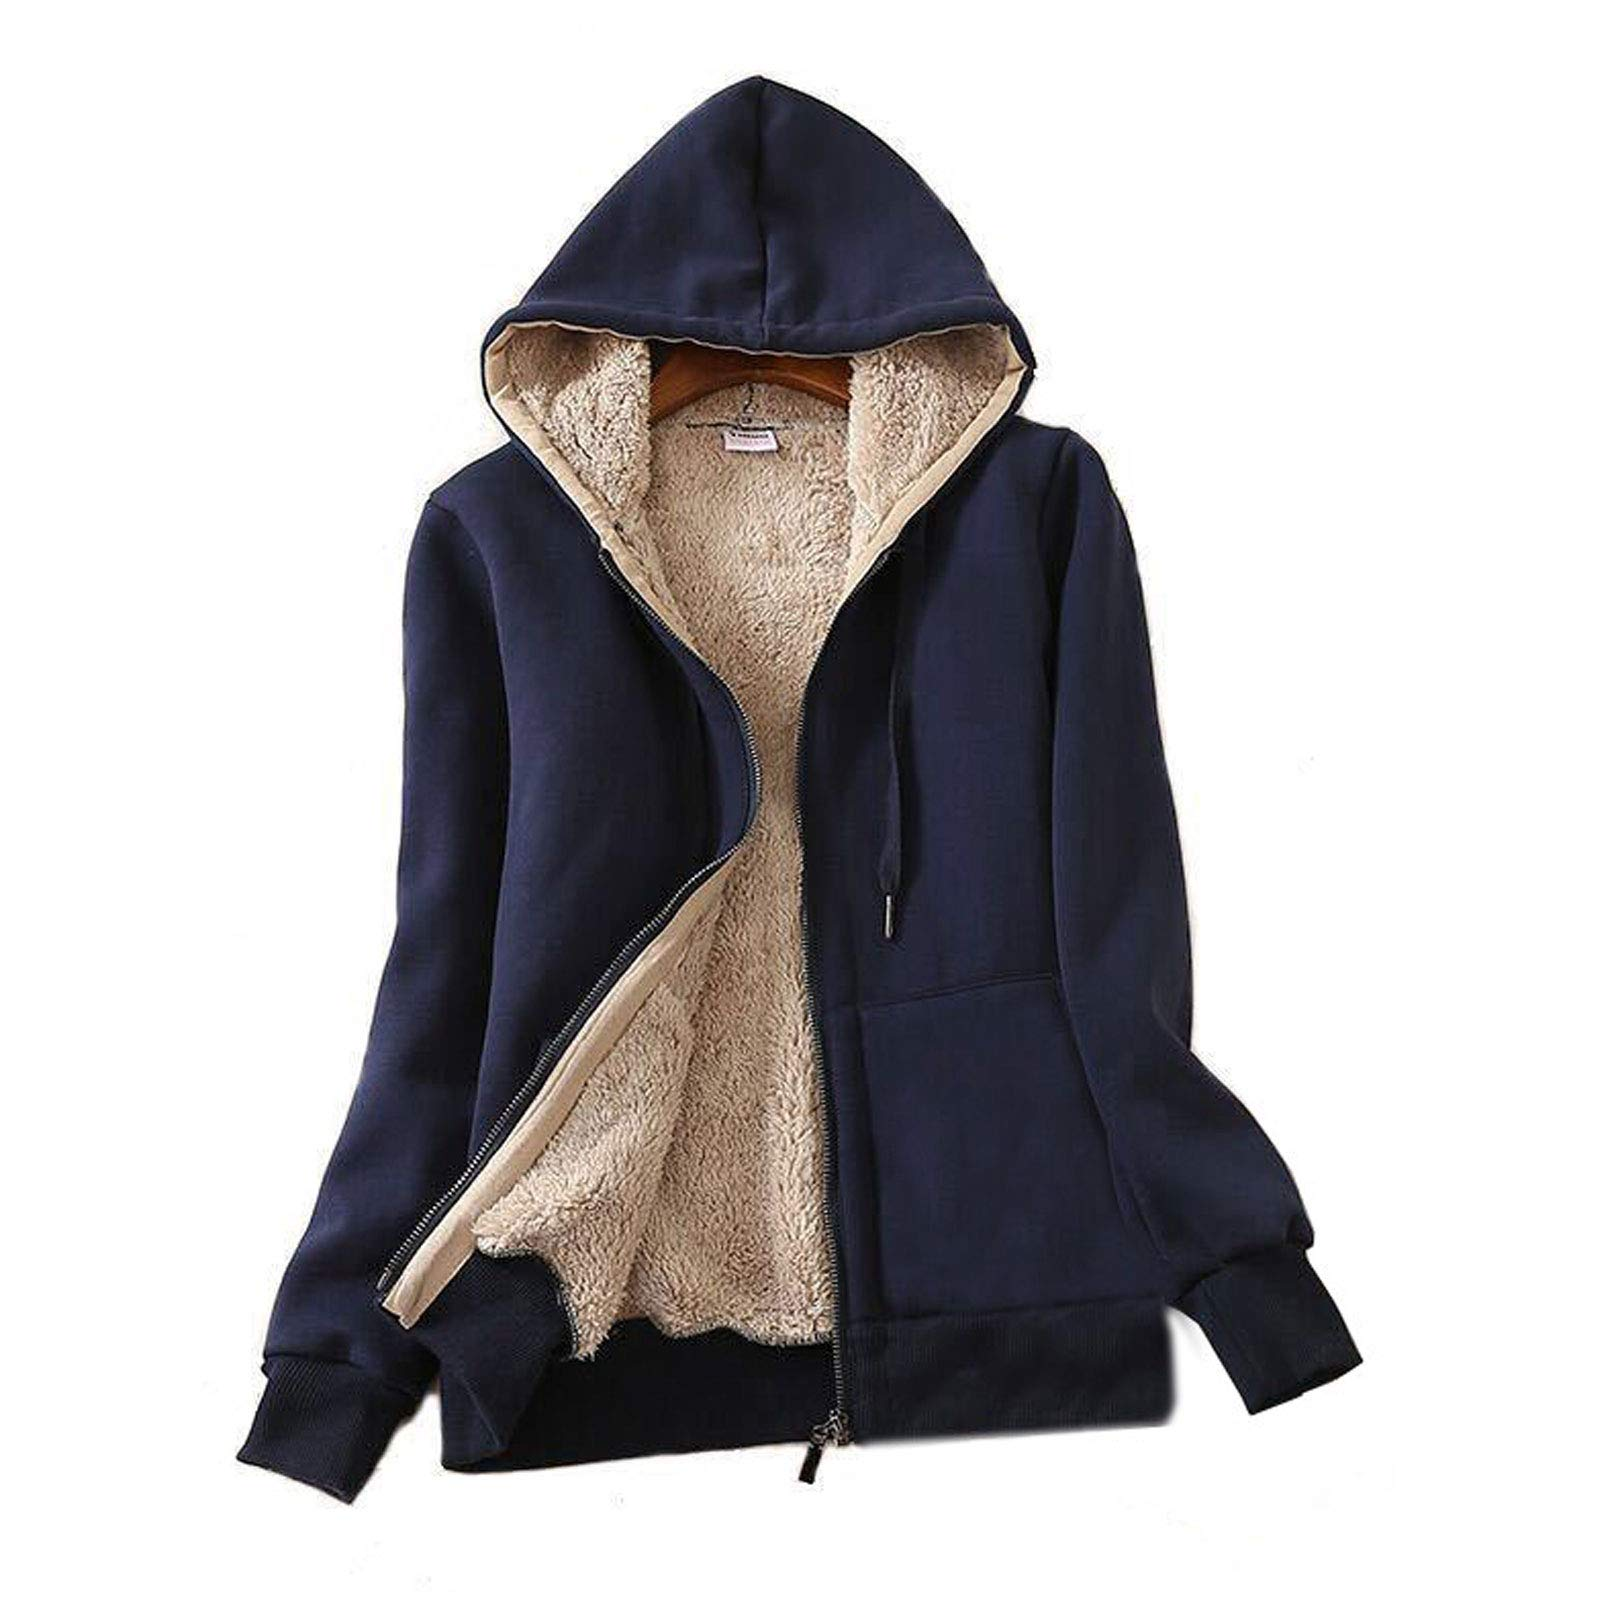 Flygo Womens Casual Winter Thick Fleece Lined Zip up Hooded Sweatshirt Jacket Coat (X-Large, Navy Blue) by Flygo